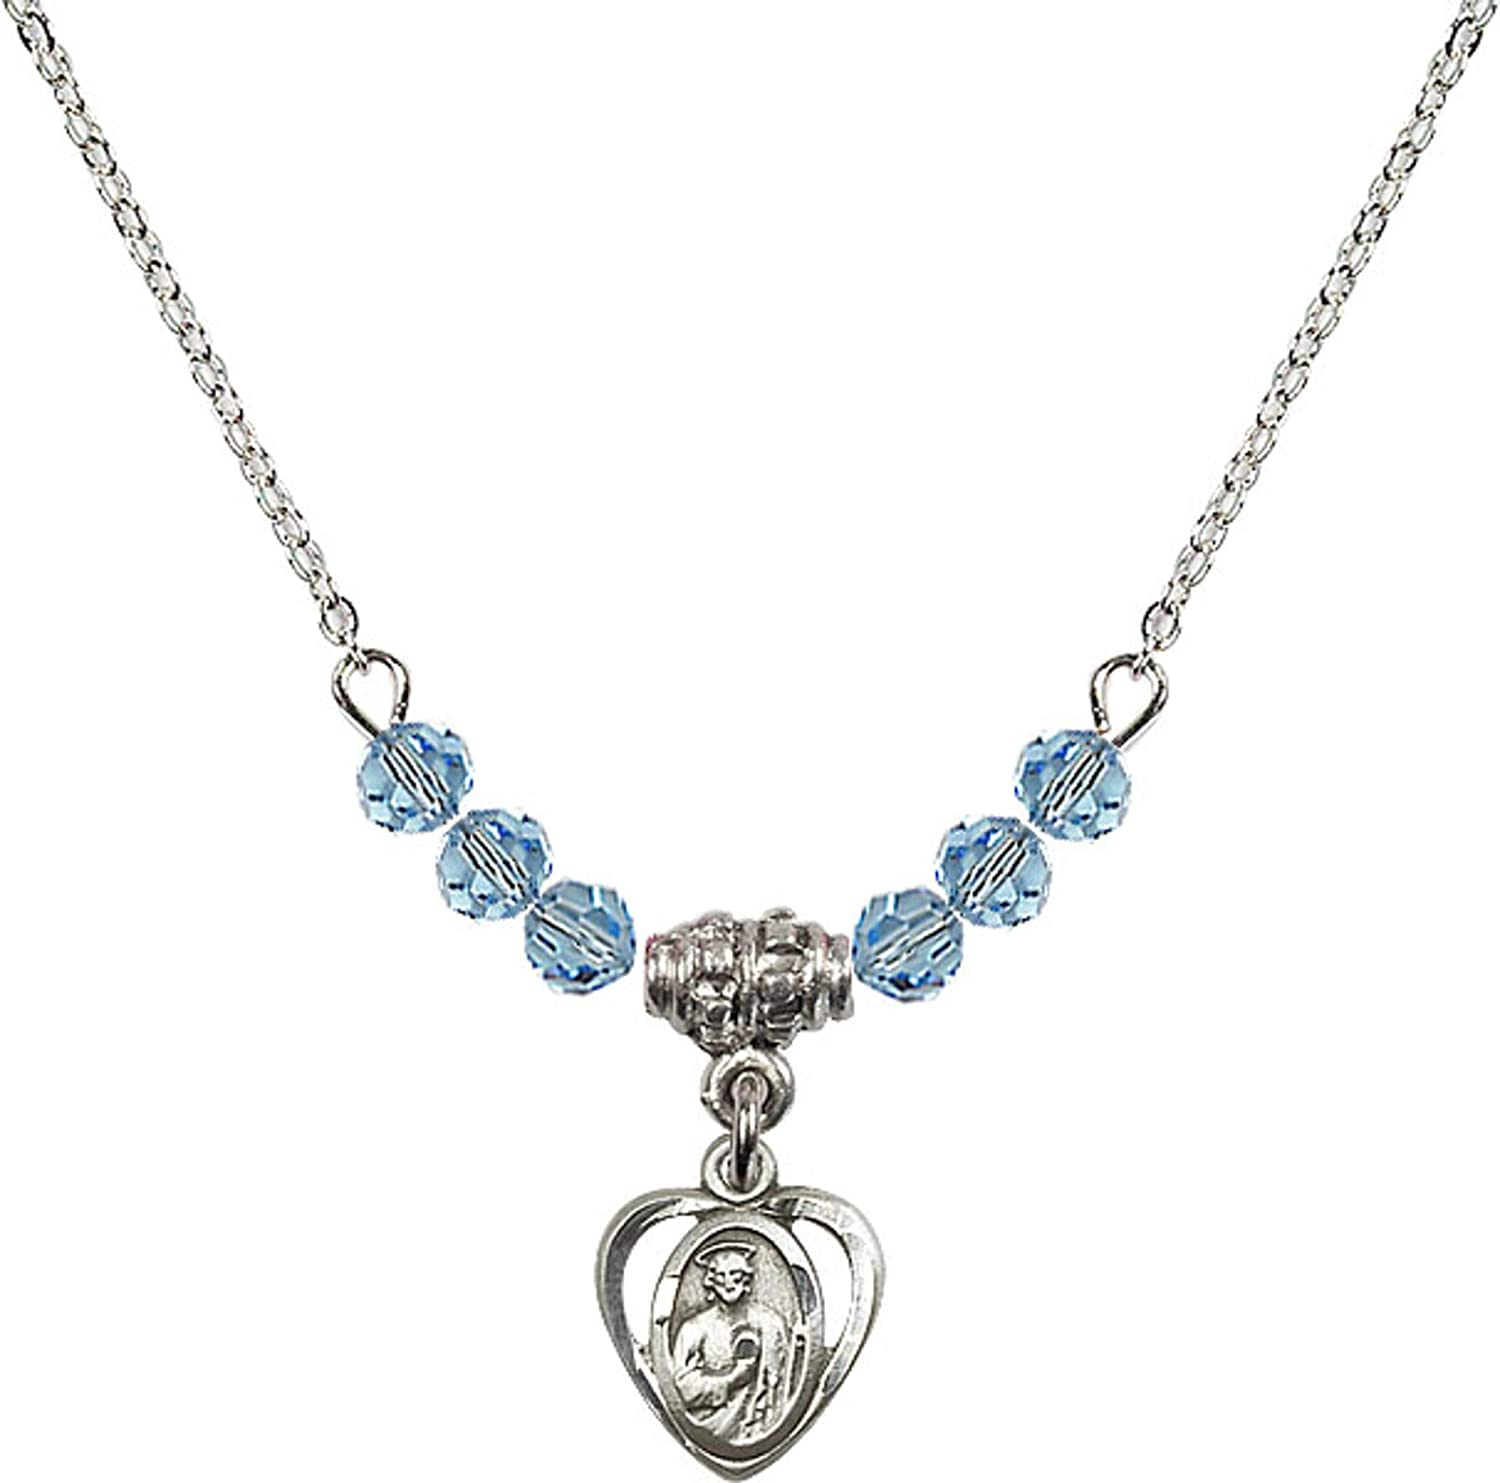 Bonyak Jewelry 18 Inch Rhodium Plated Necklace w// 4mm Blue March Birth Month Stone Beads and Saint Jude Charm